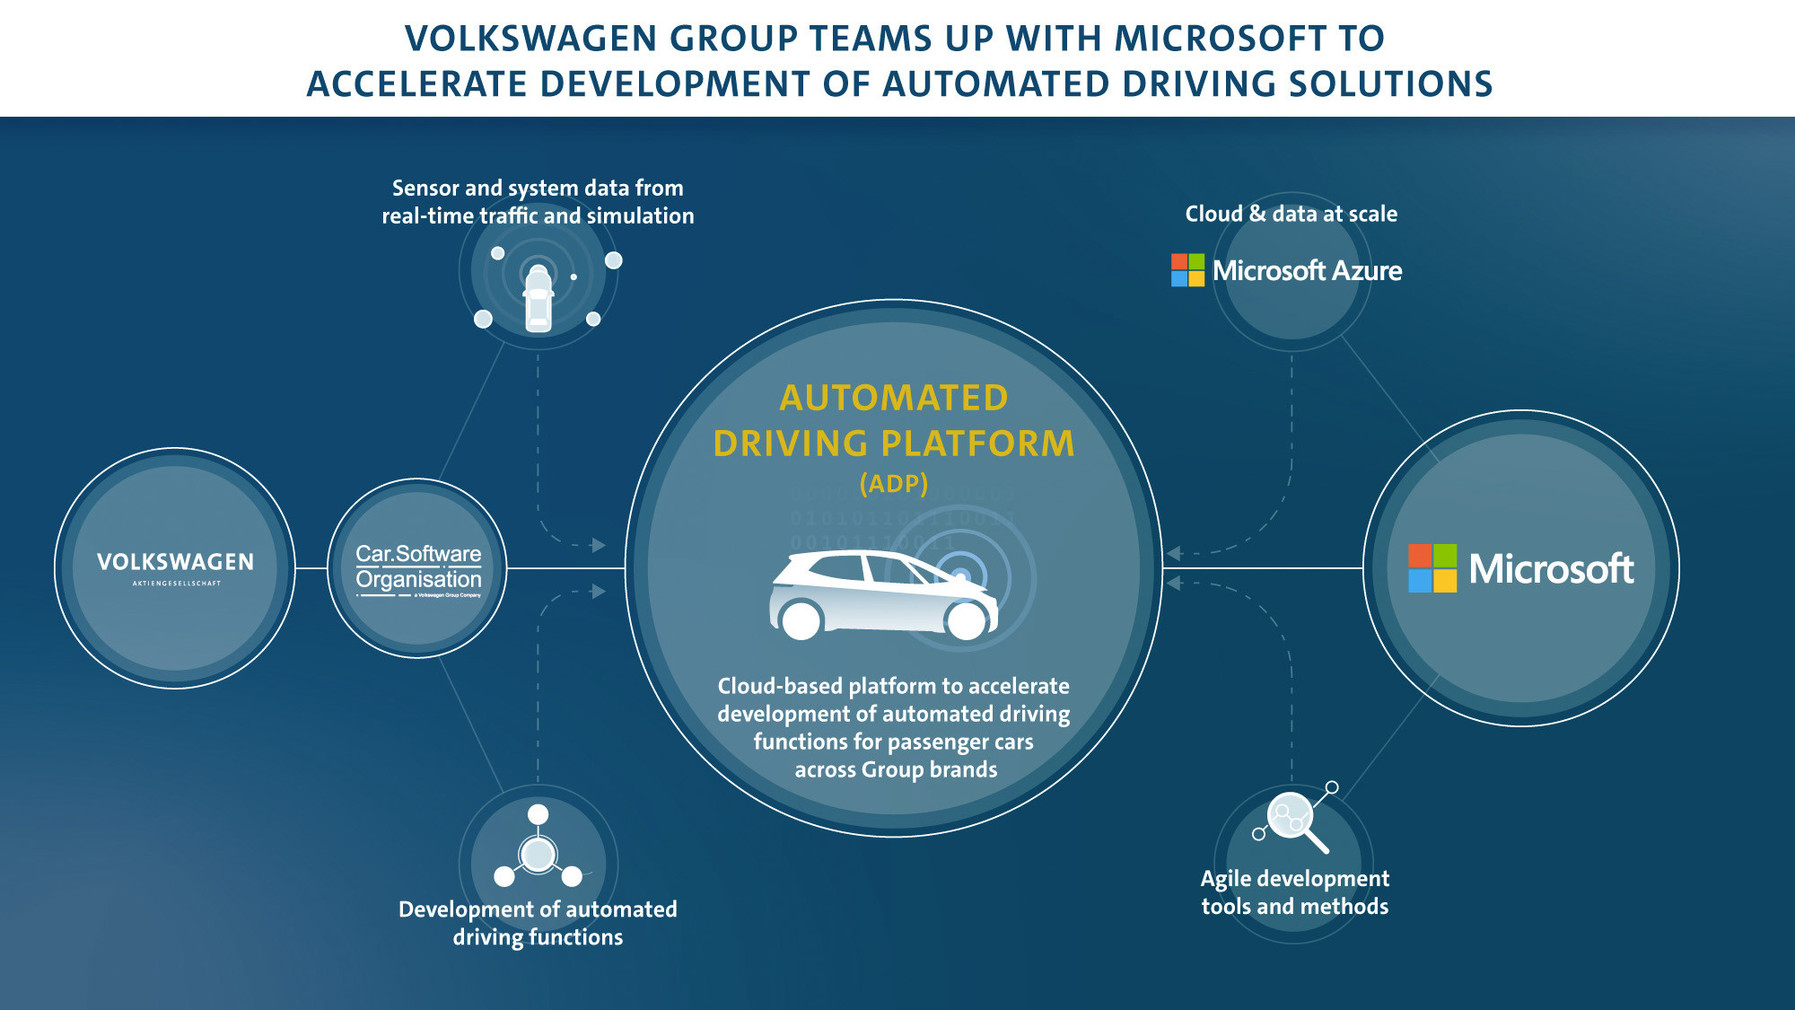 Volkswagen-Group-teams-up-with-Microsoft-to-accelerate-the-devel